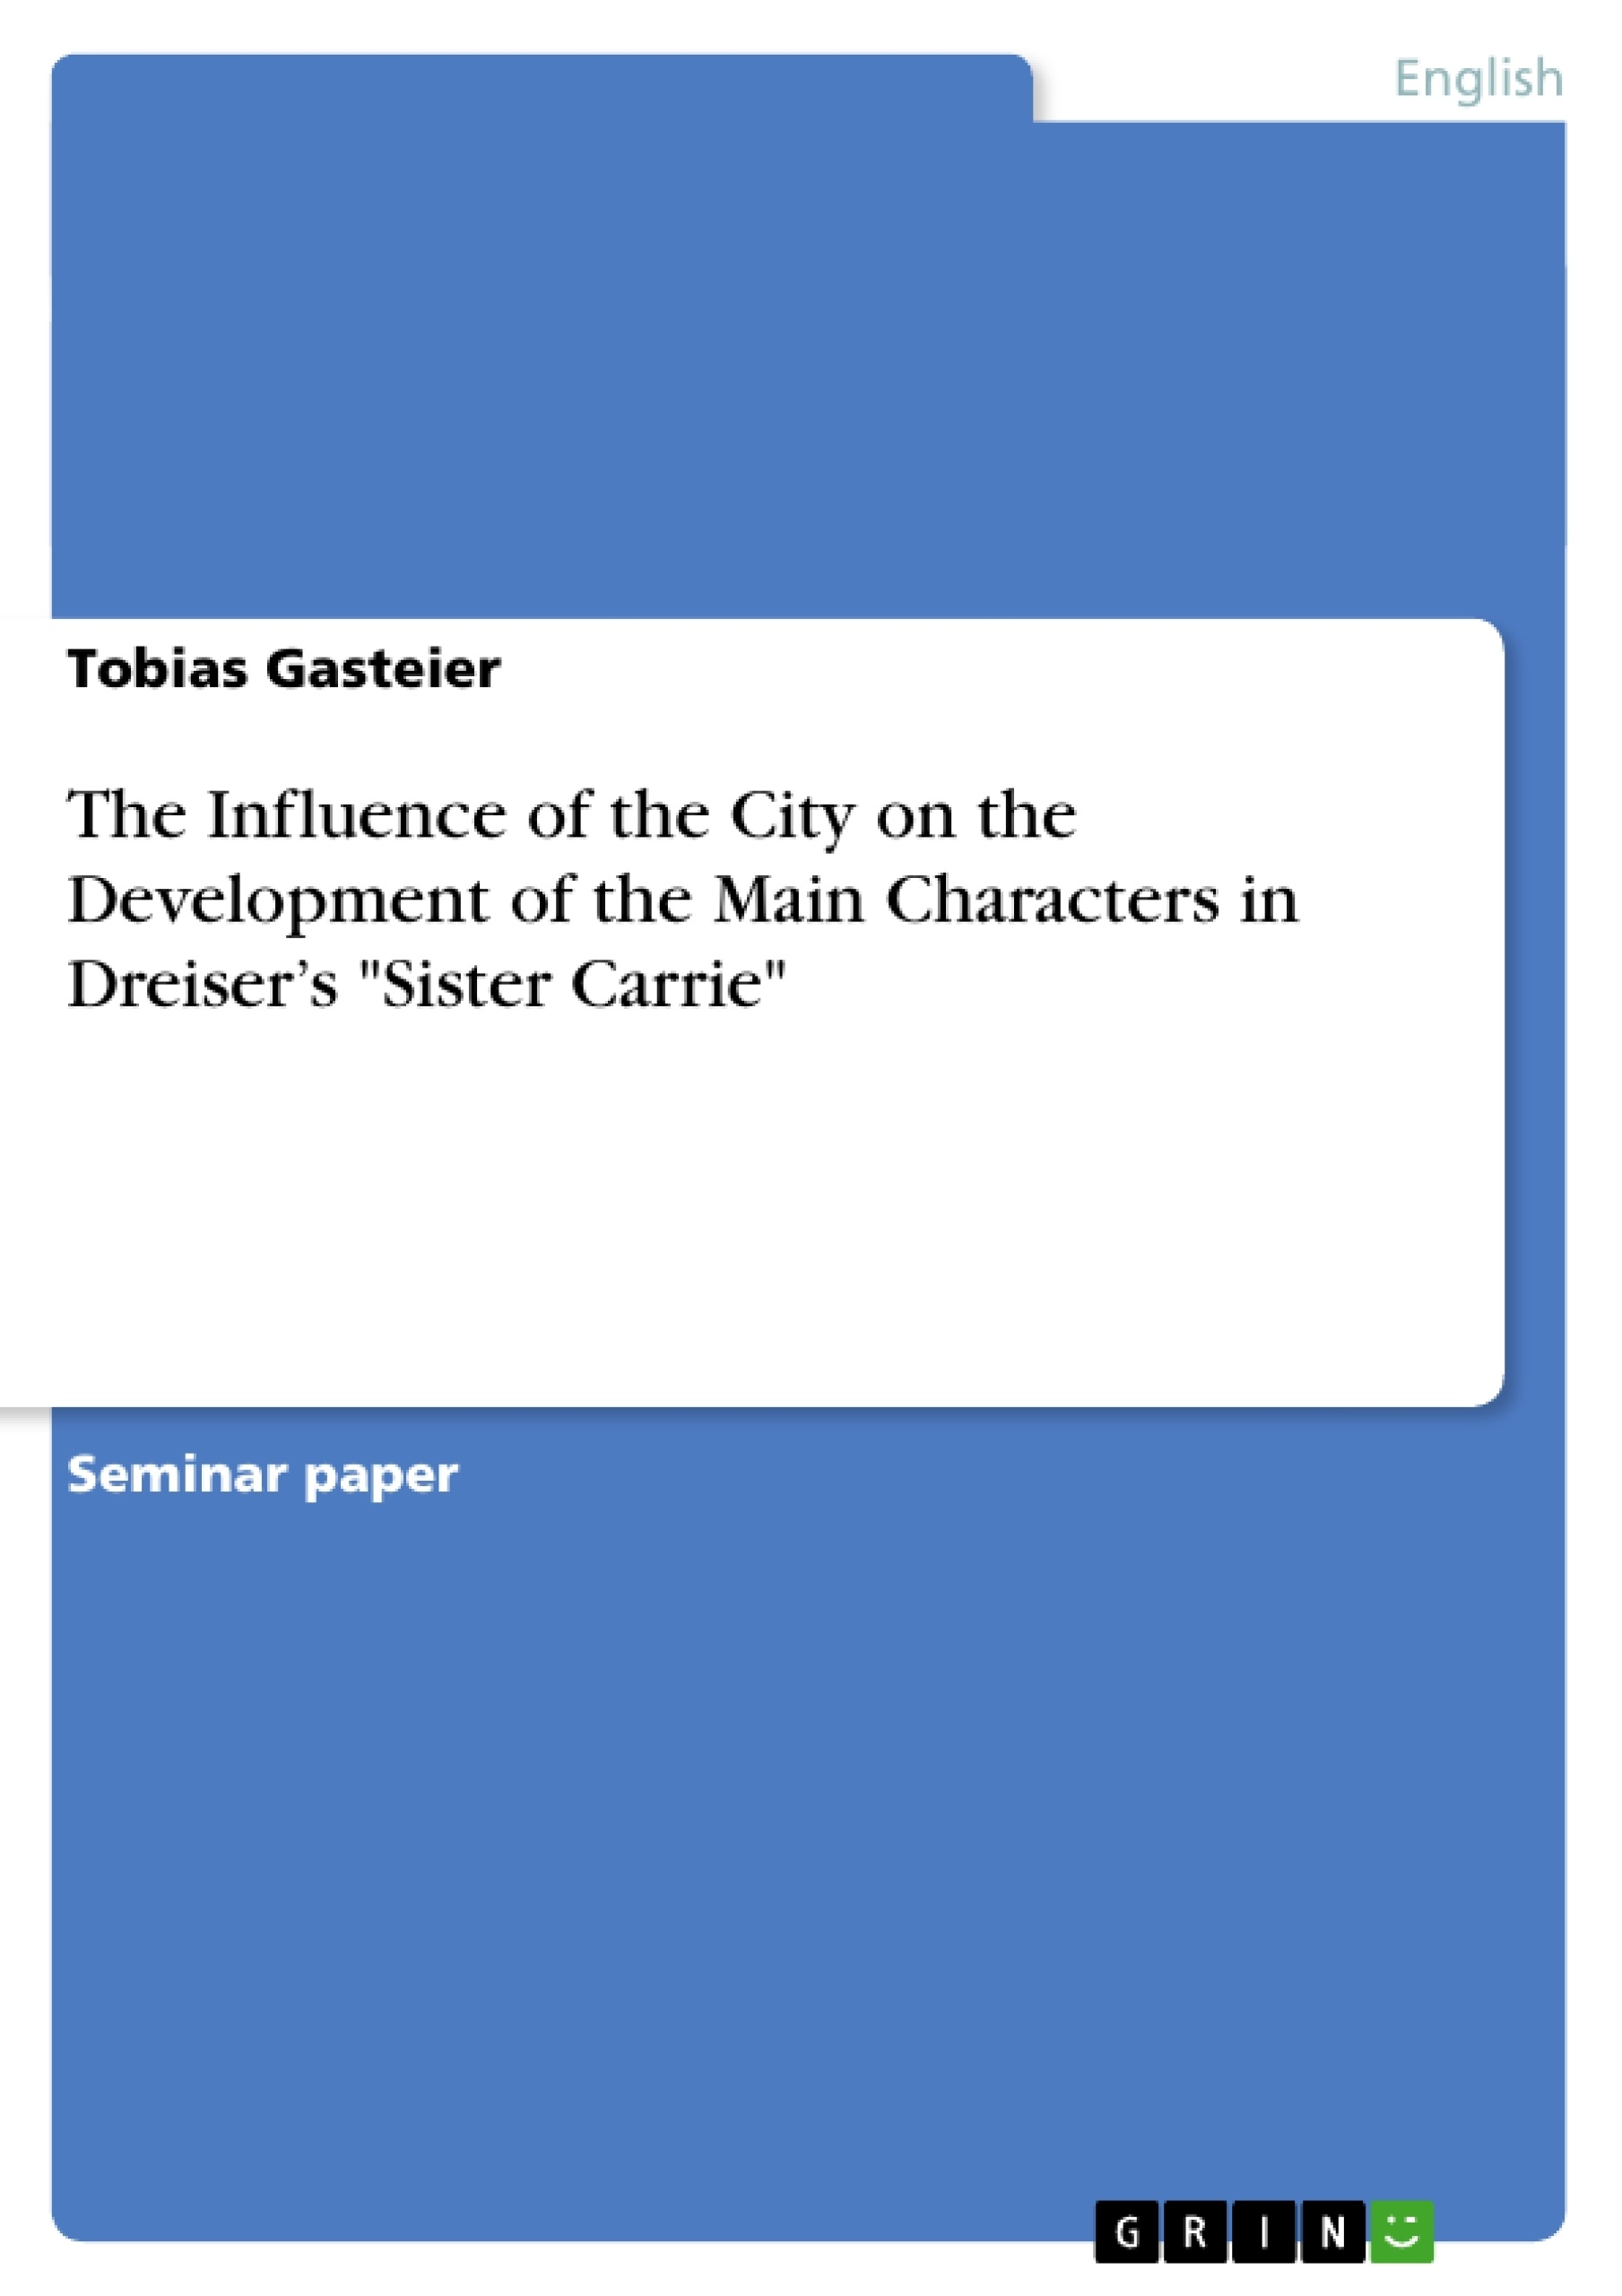 """Title: The Influence of the City on the Development of the Main Characters in Dreiser's """"Sister Carrie"""""""